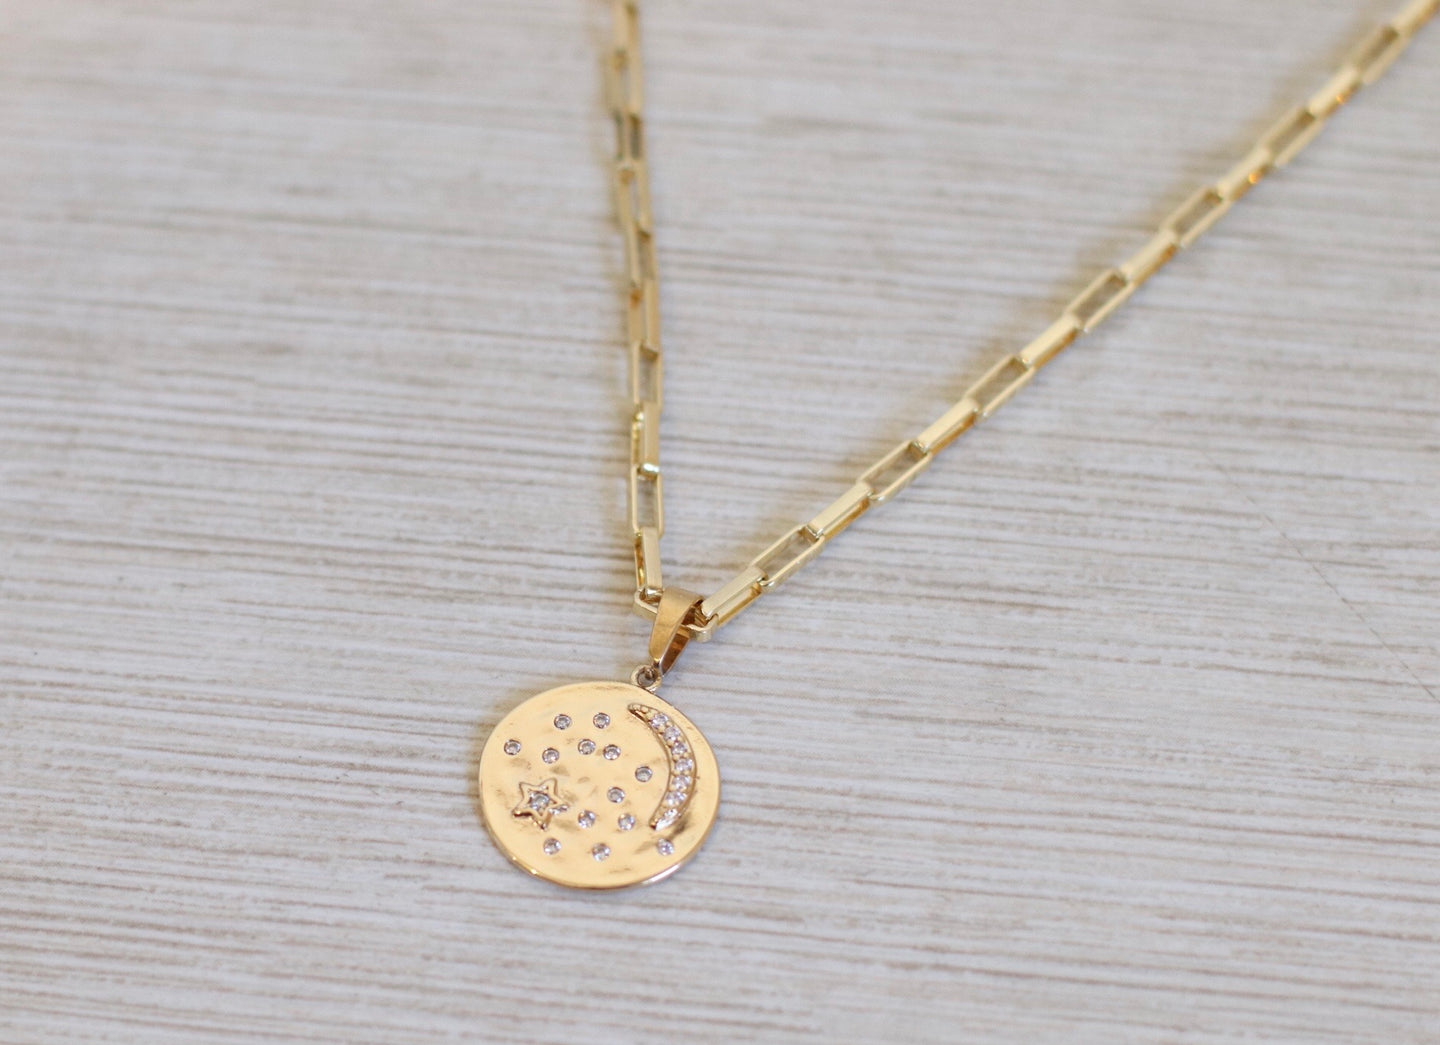 The Just like Heaven Necklace